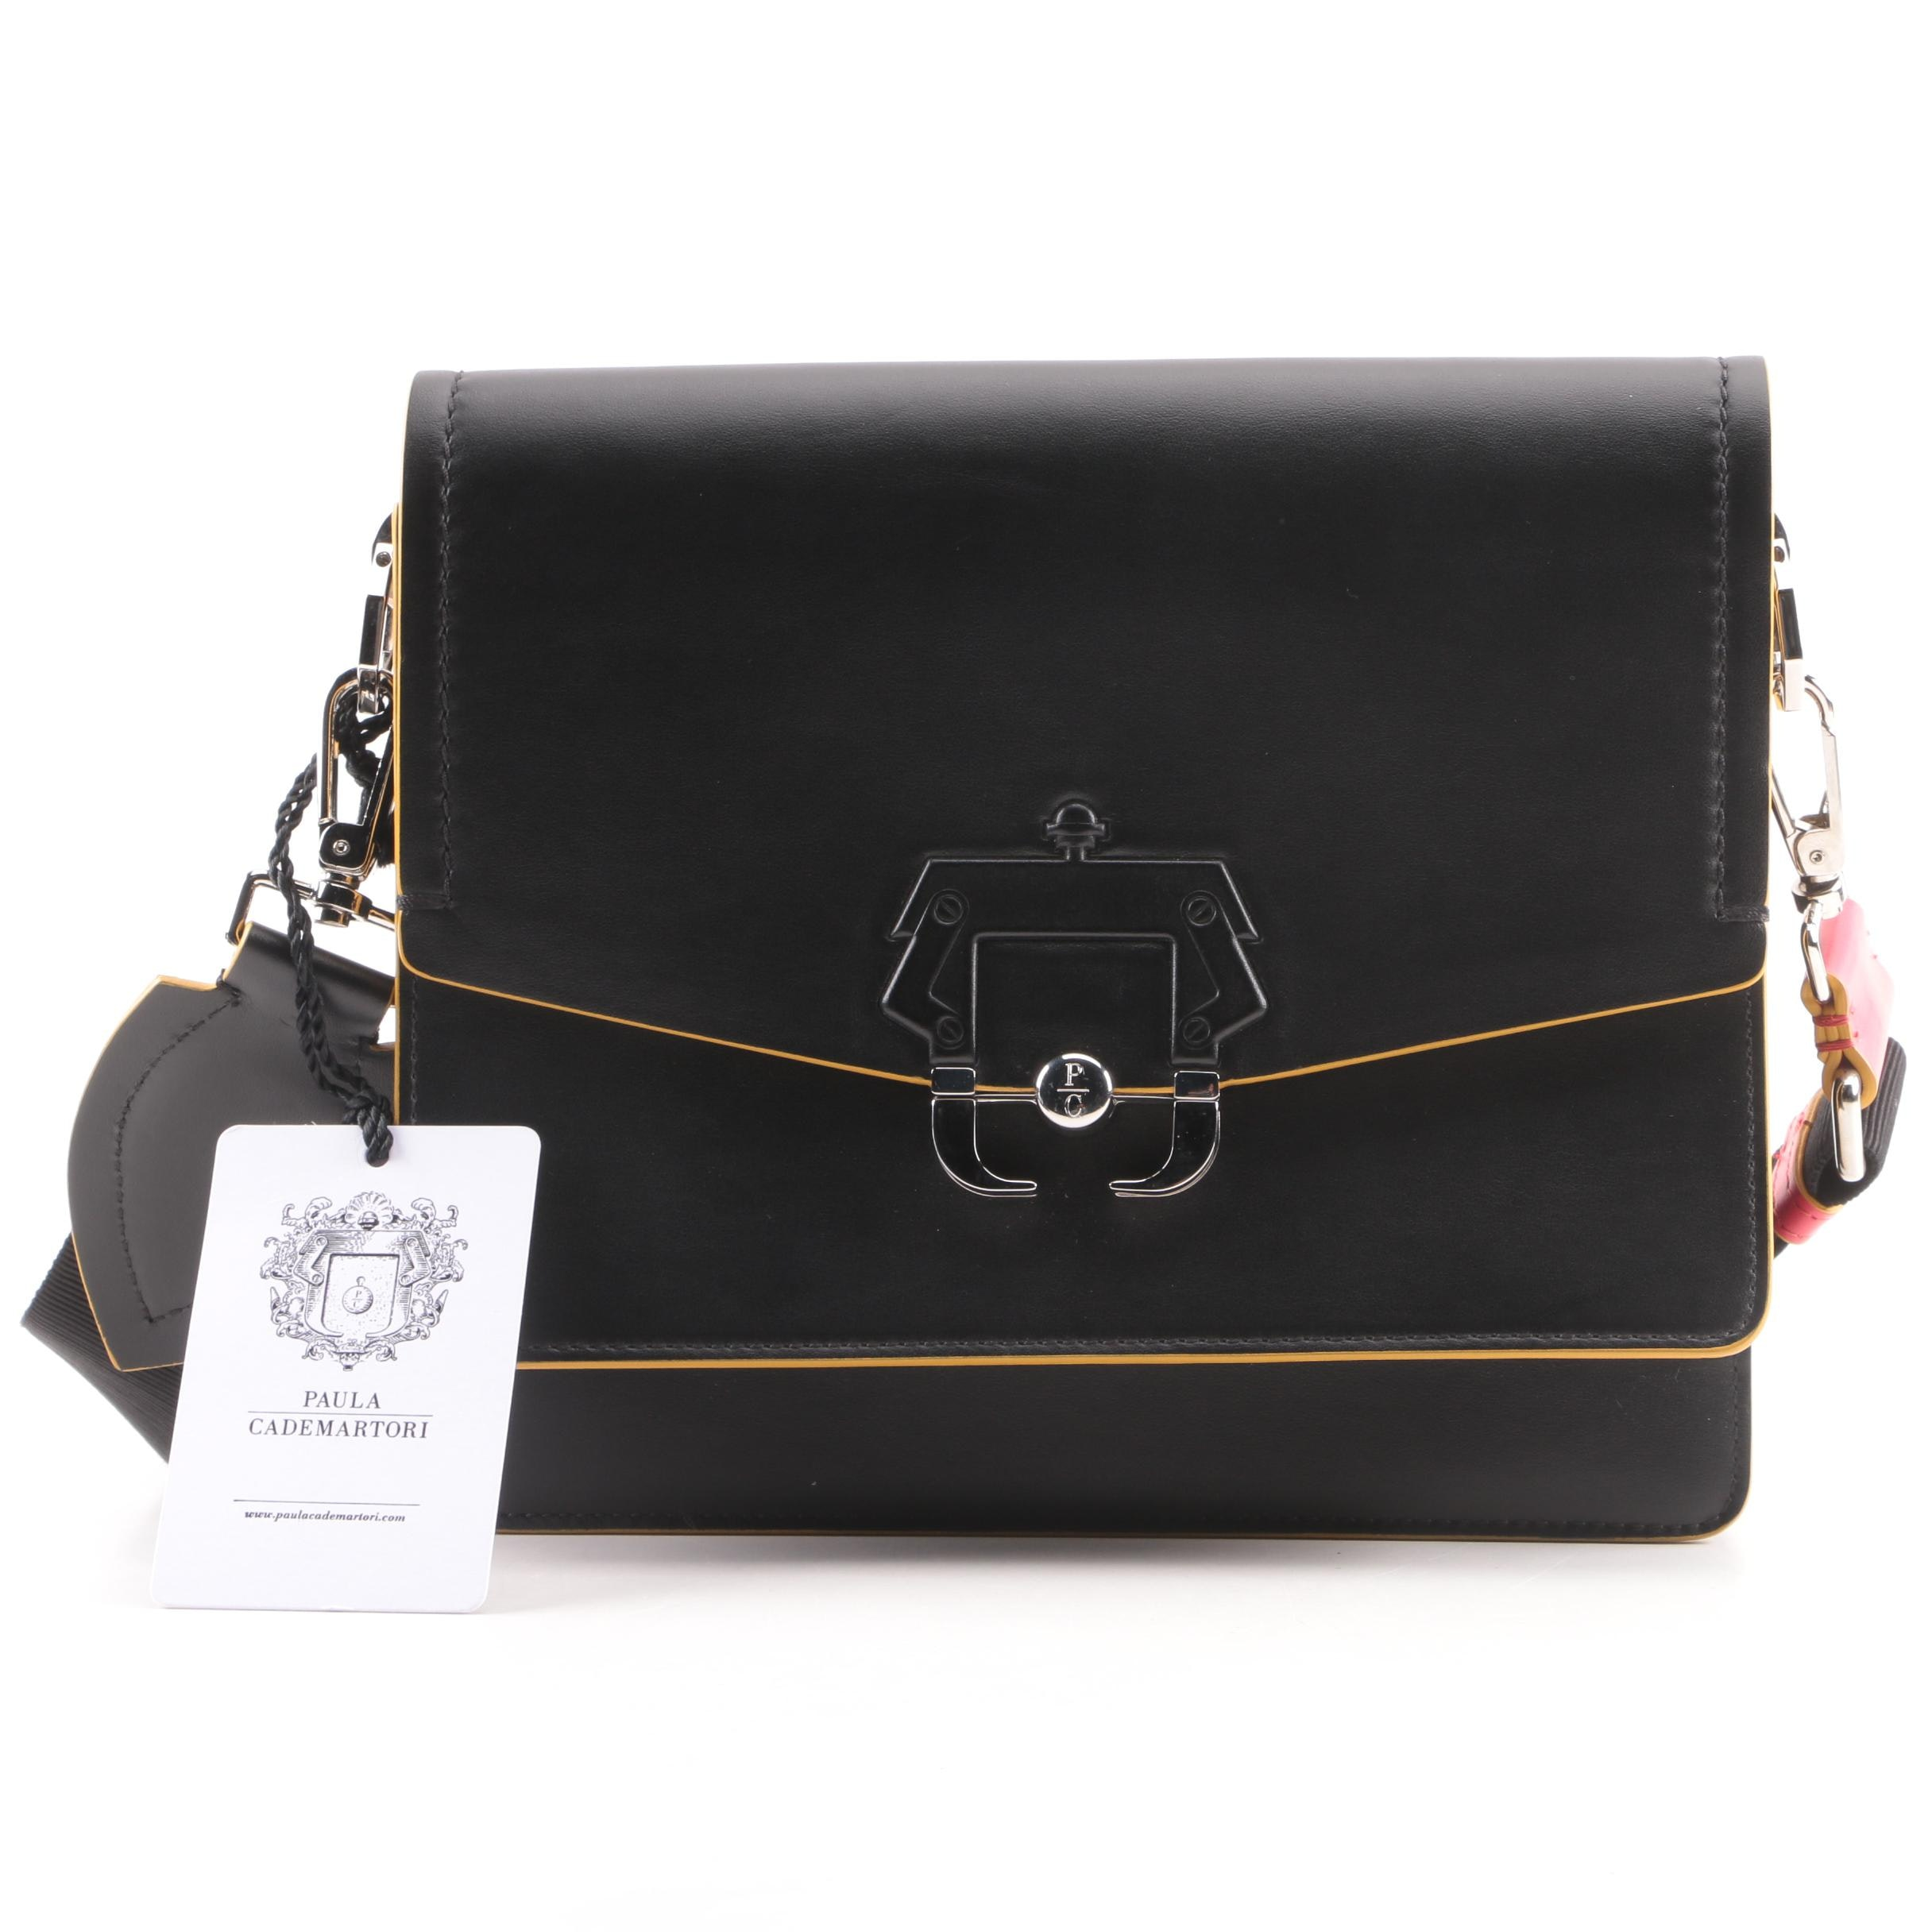 Paula Cademartori Twiggy Black Leather Shoulder Bag